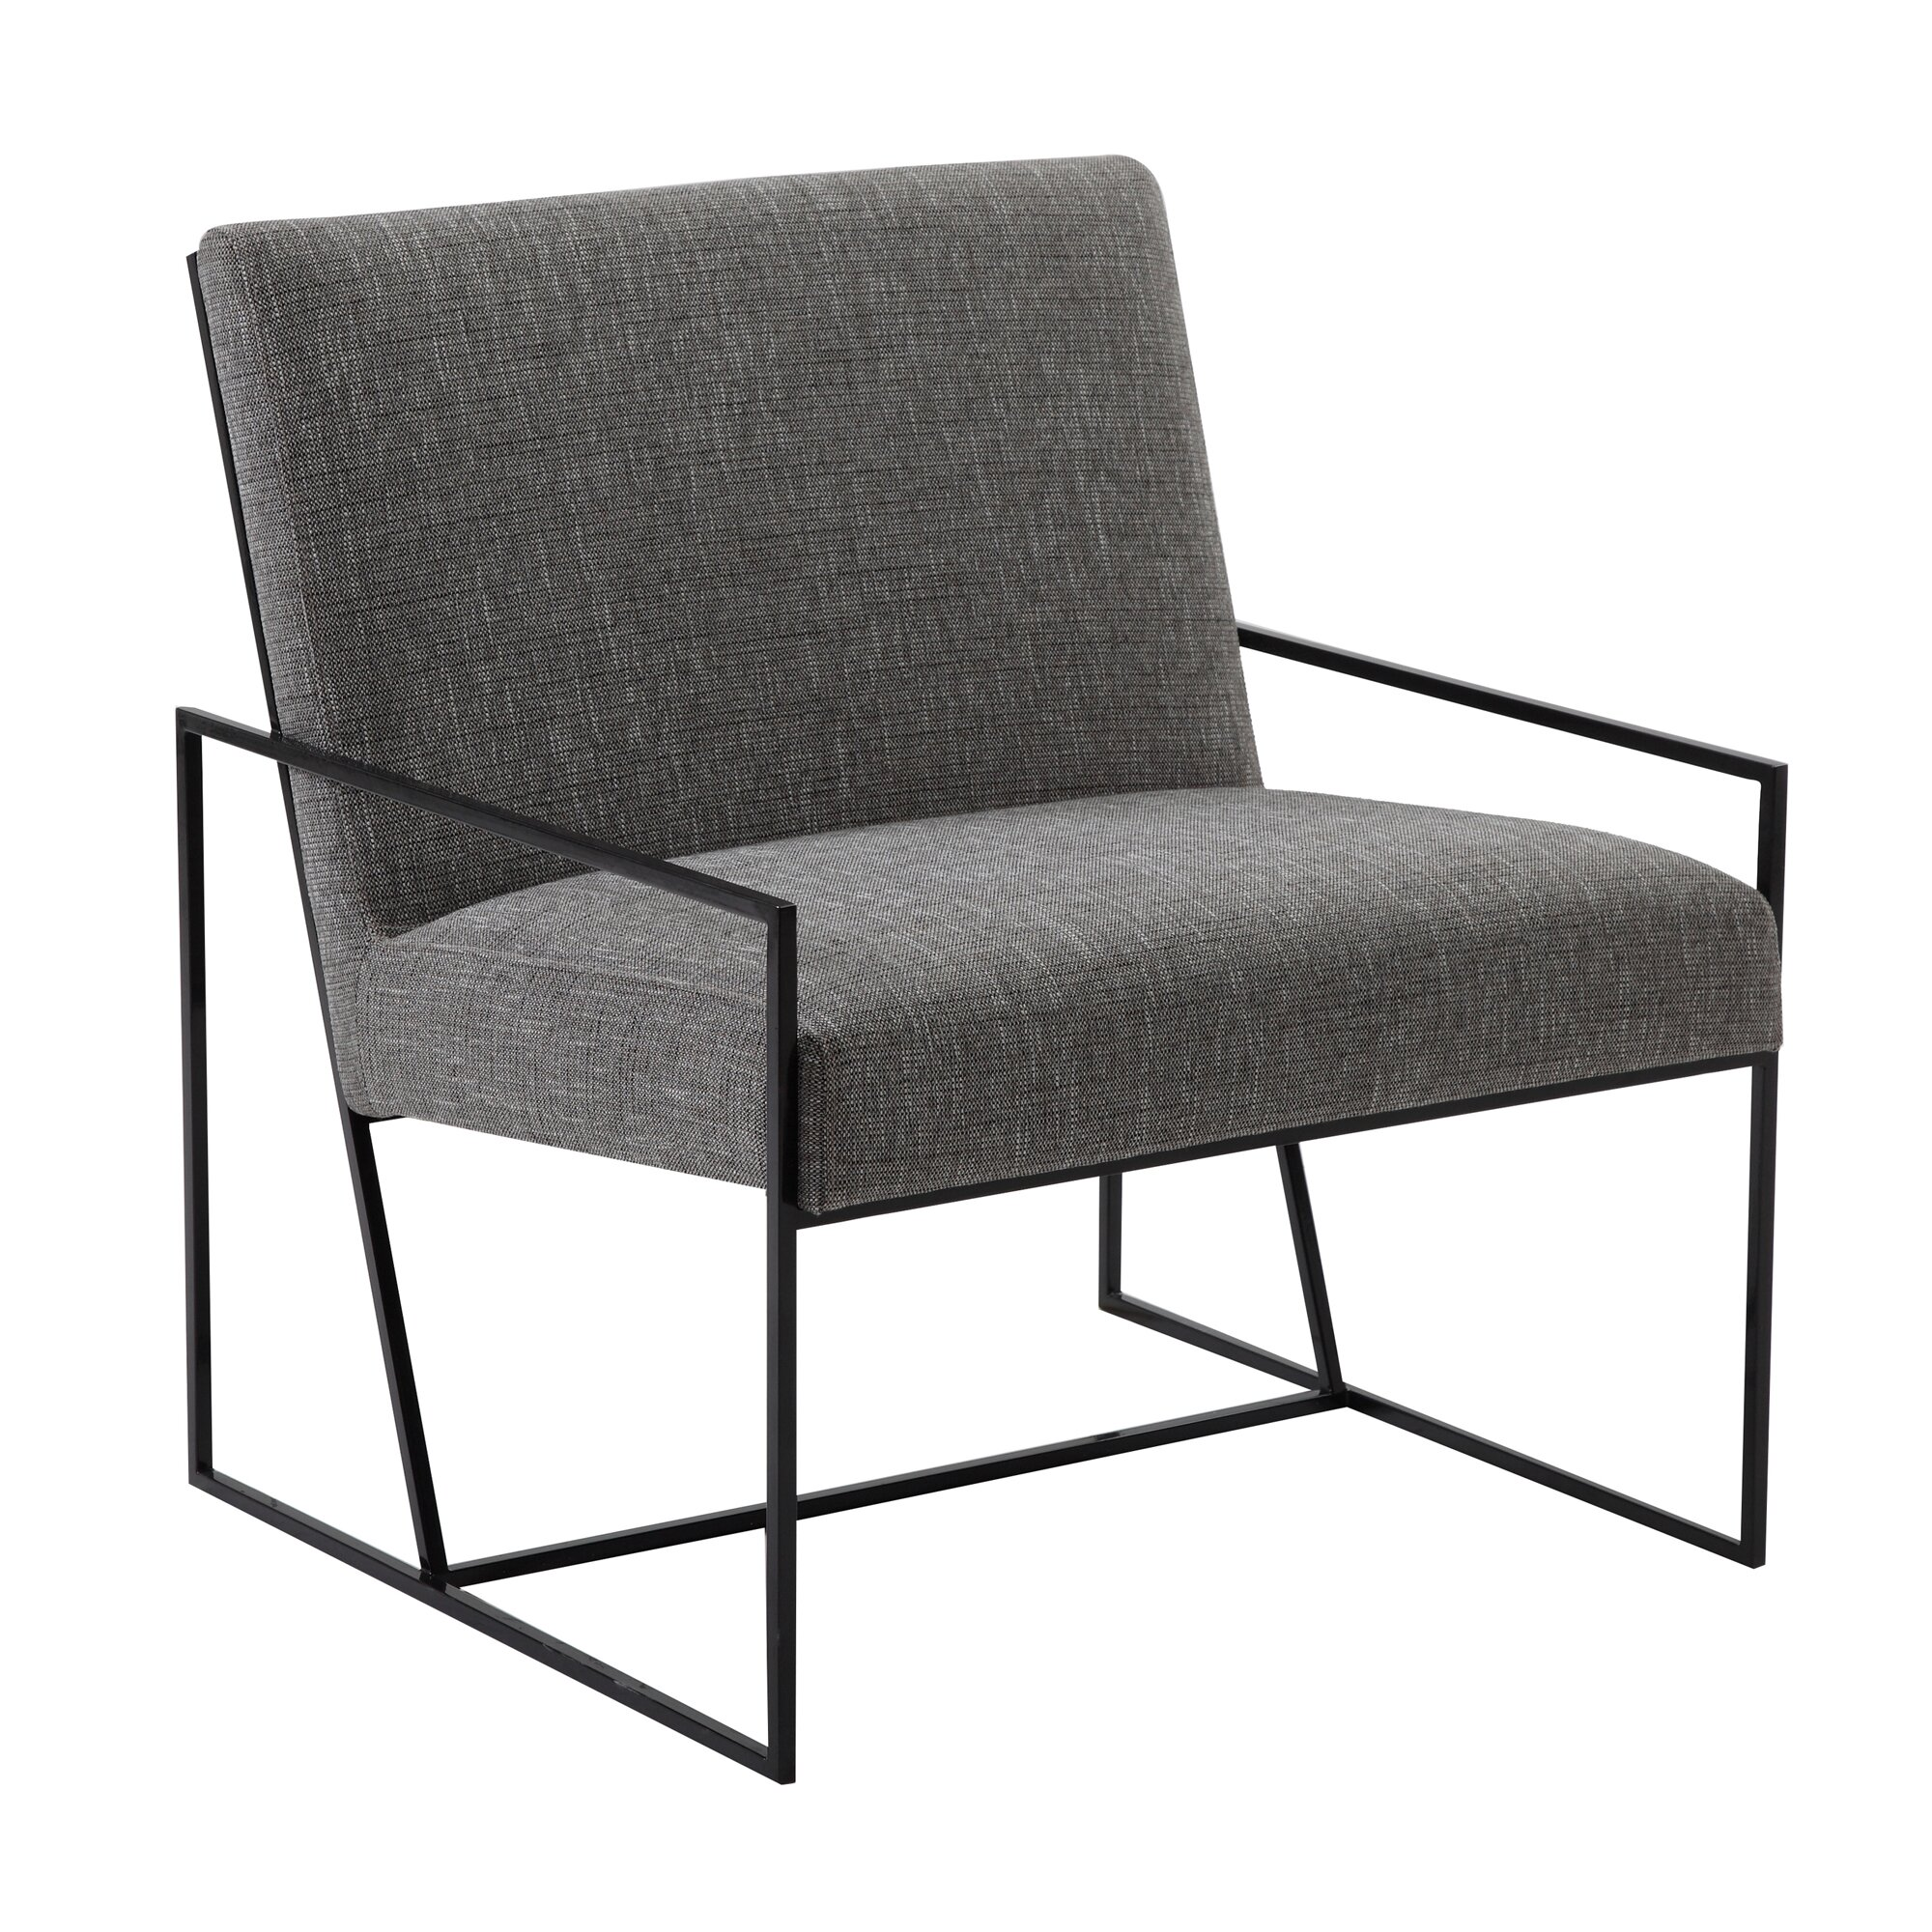 Allan Copley Designs Dora Lounge Chair Allmodern